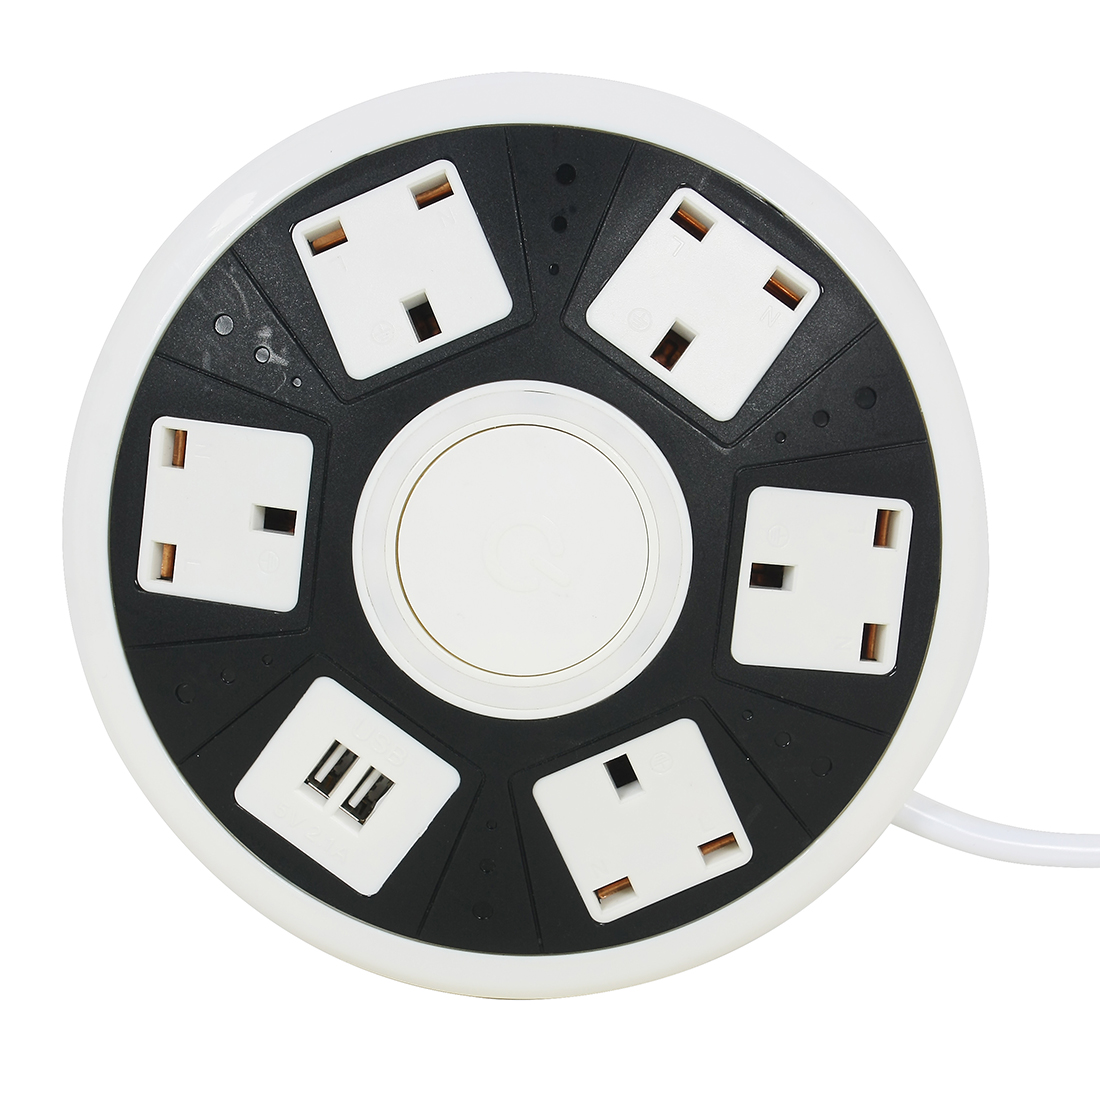 AC 250V UK Plug UFO Shape Power Outlet 5 UK Sockets 2 USB Outputs 6 Ft Cable White Black